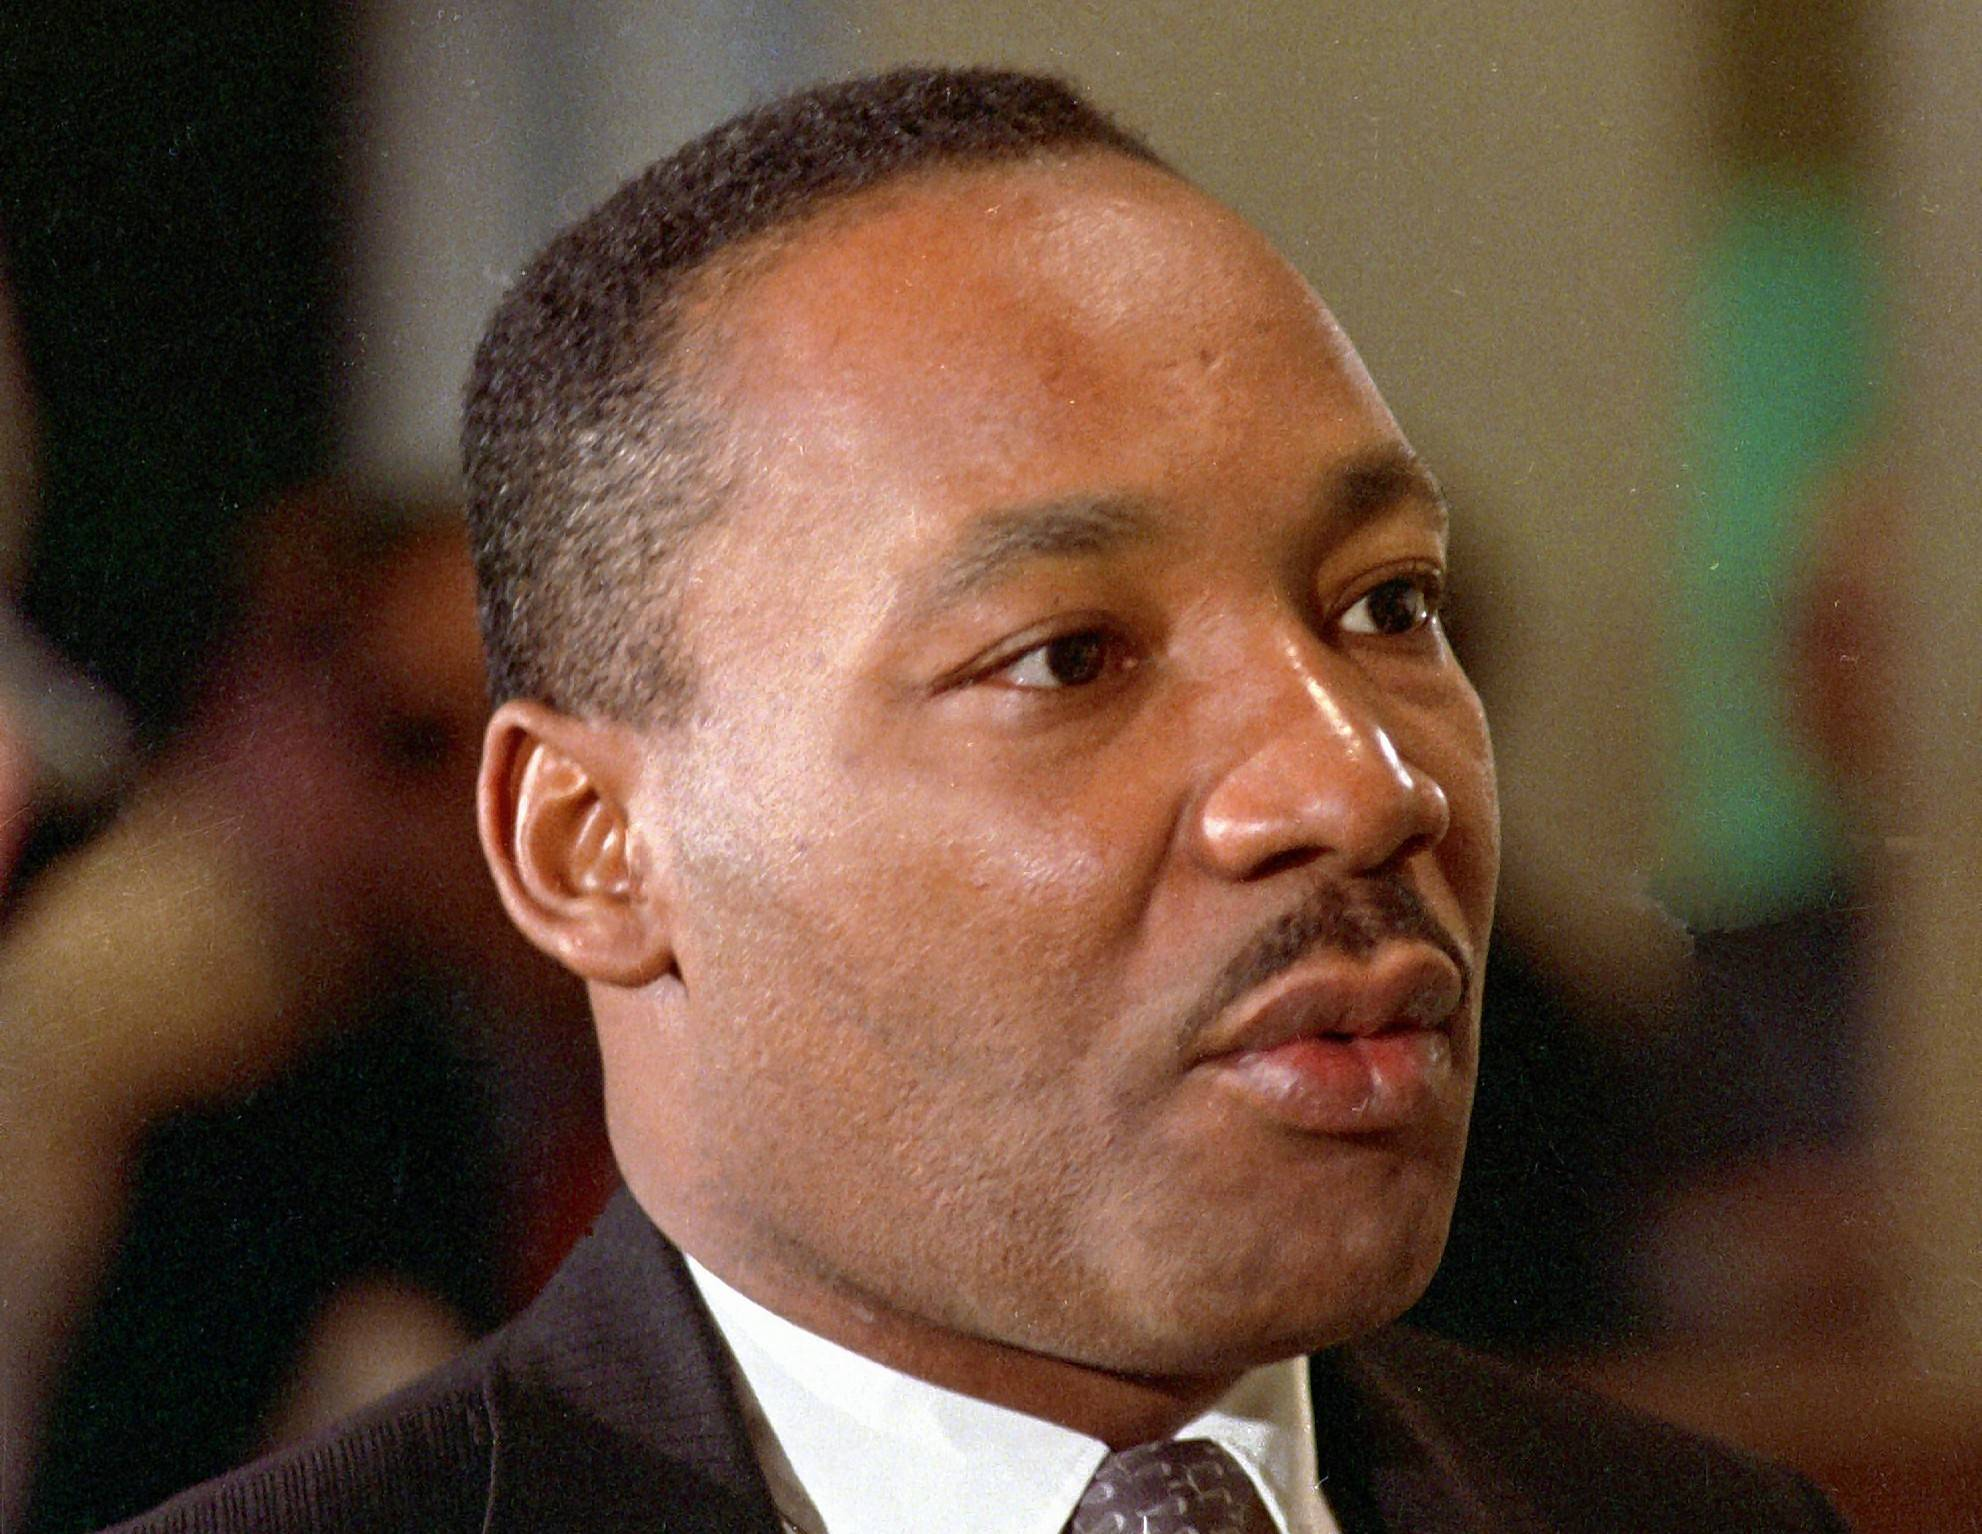 Martin luther king jr short essay